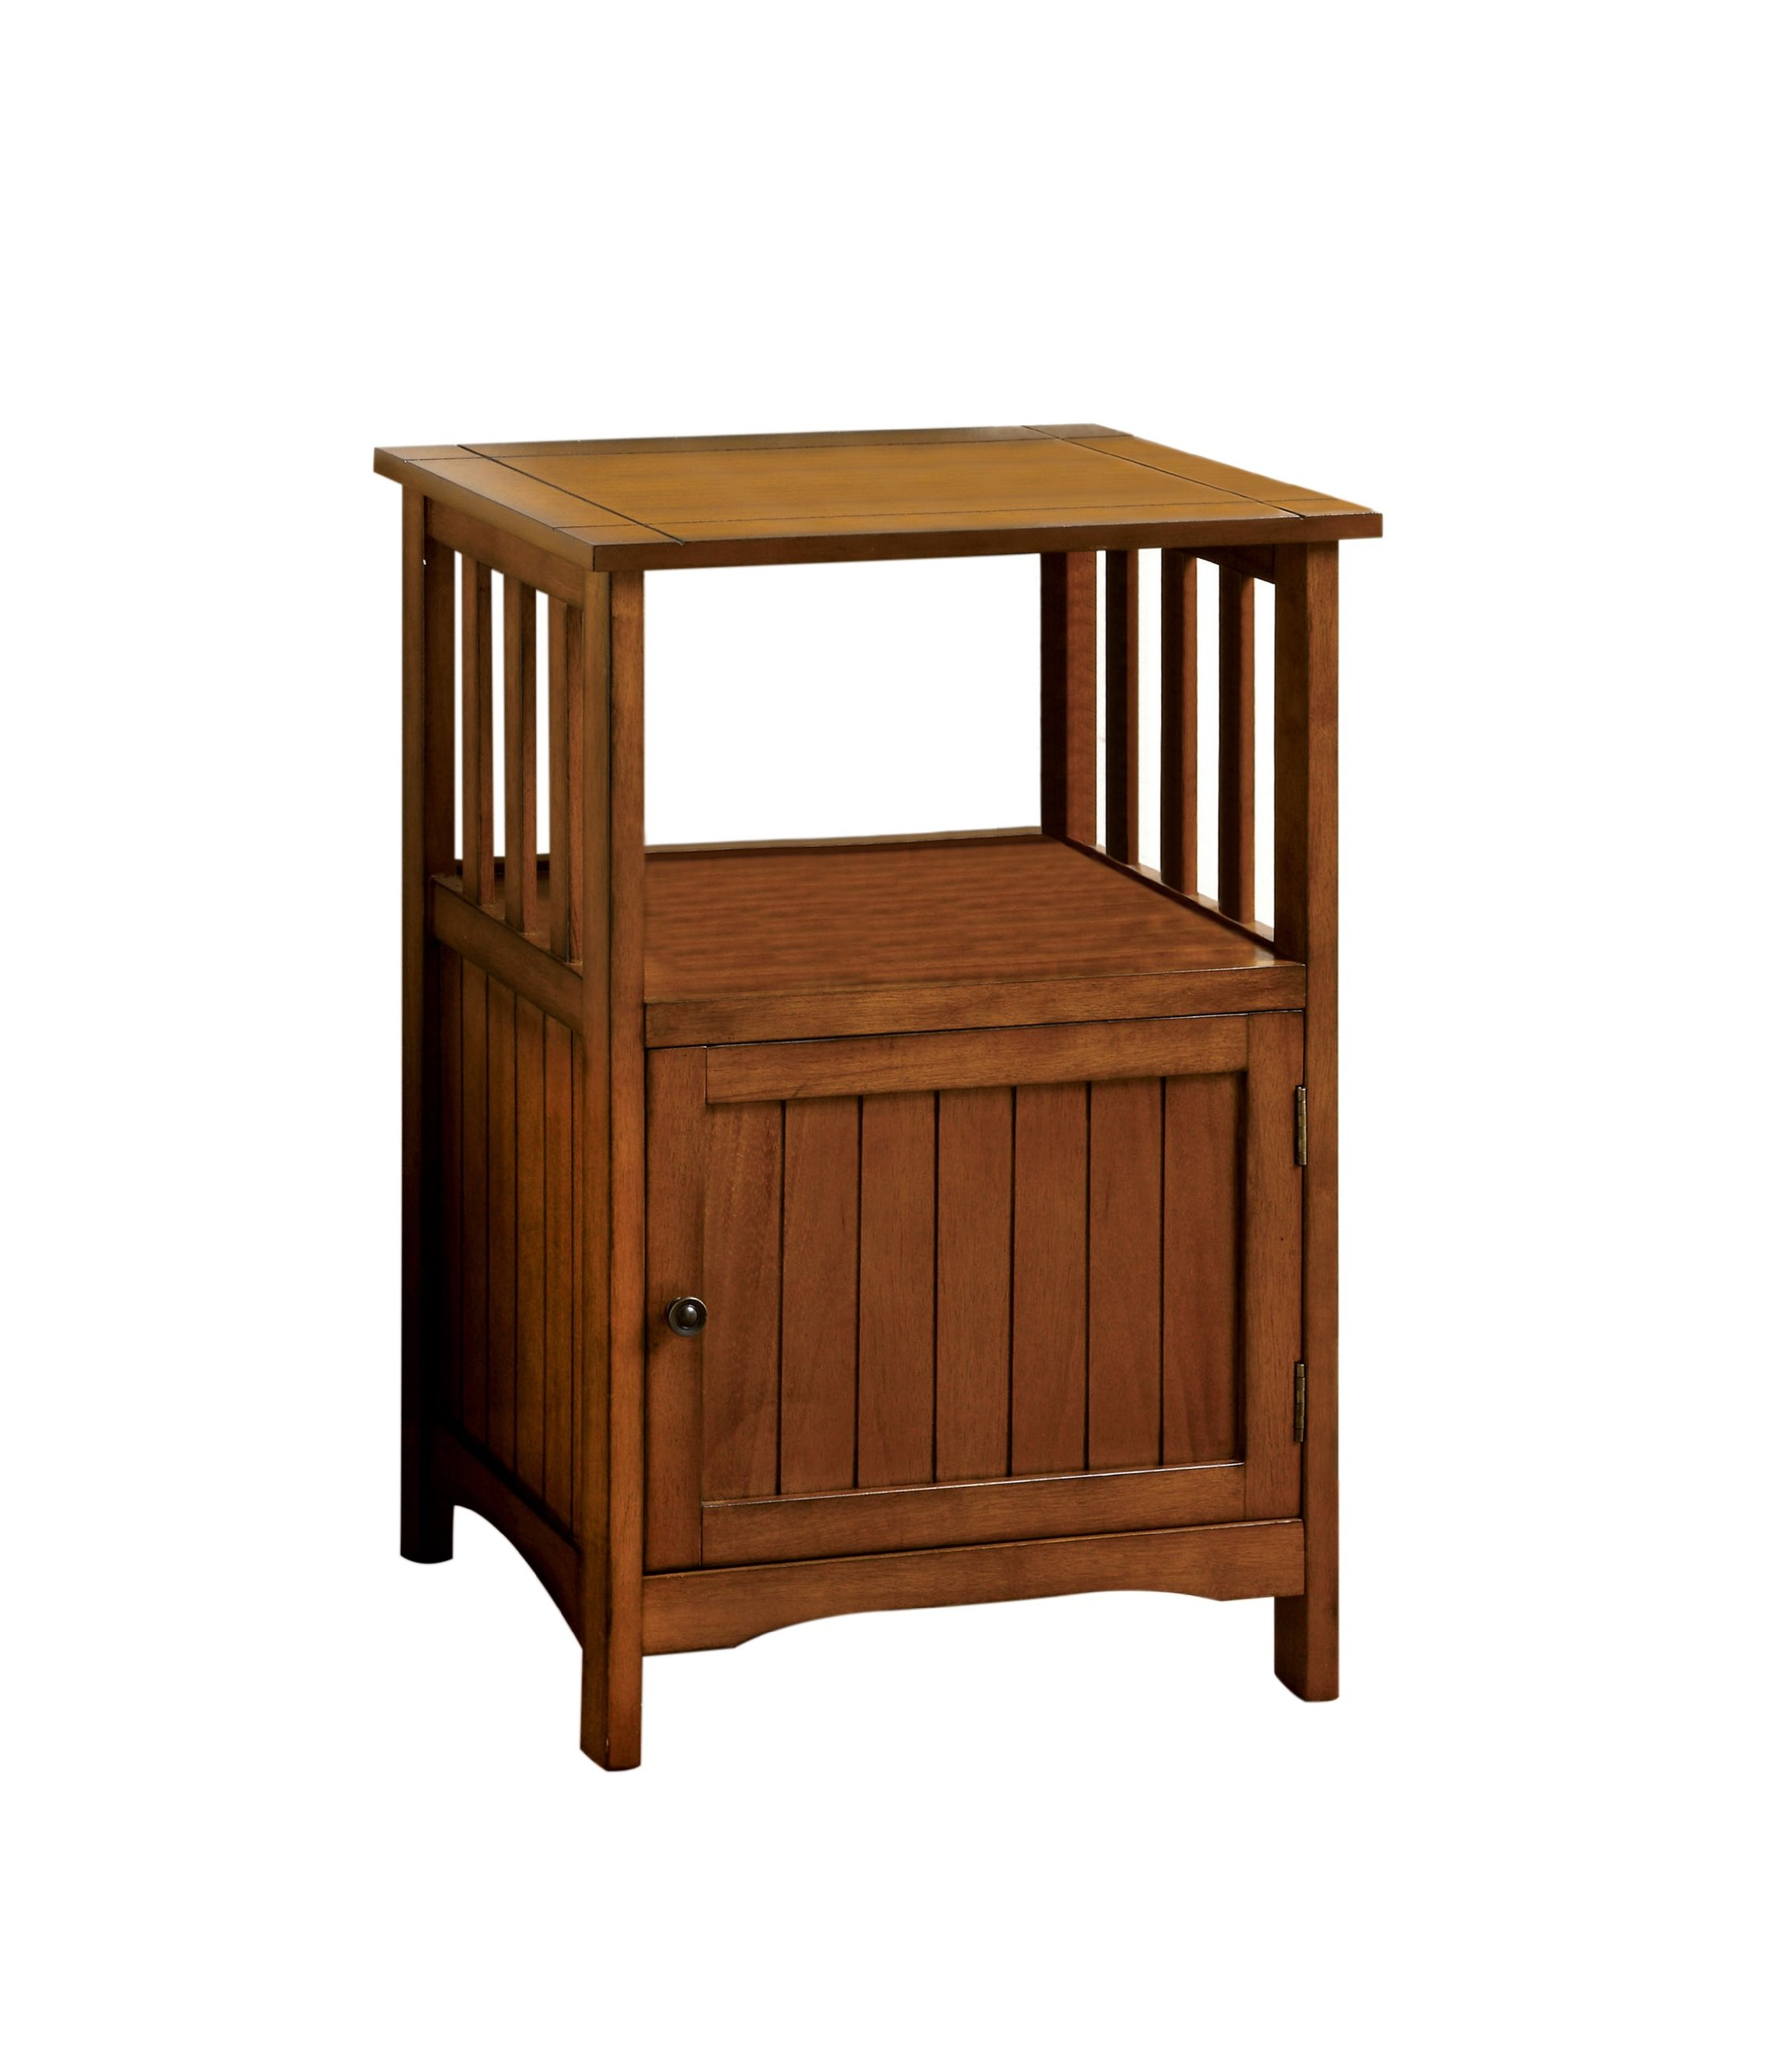 Furniture of America Pompey Mission Style 1-Door Side Table, Antique Oak Finish